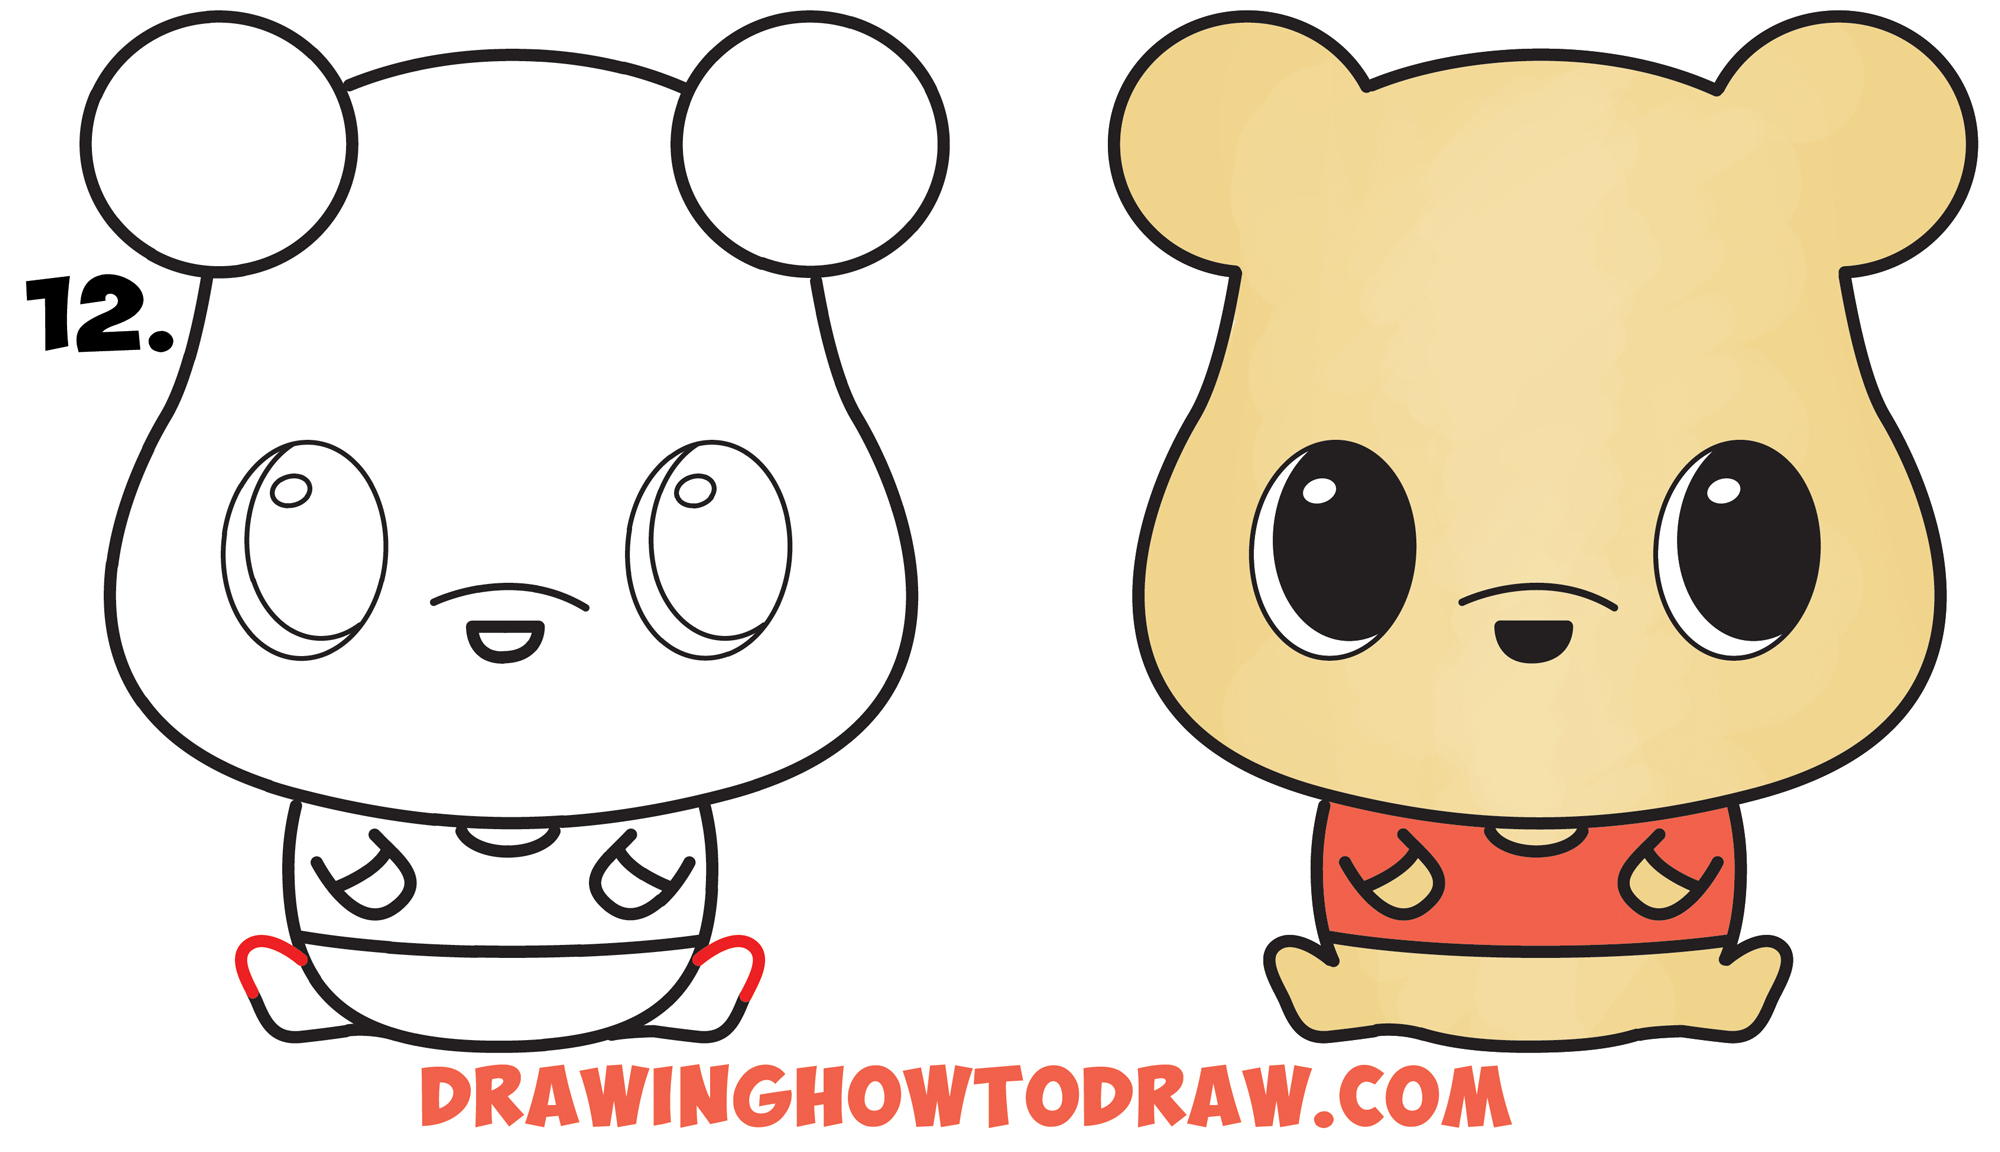 How to Draw a Cute Chibi / Kawaii Winnie The Pooh Simple Steps Drawing Lesson for Beginners & Kids